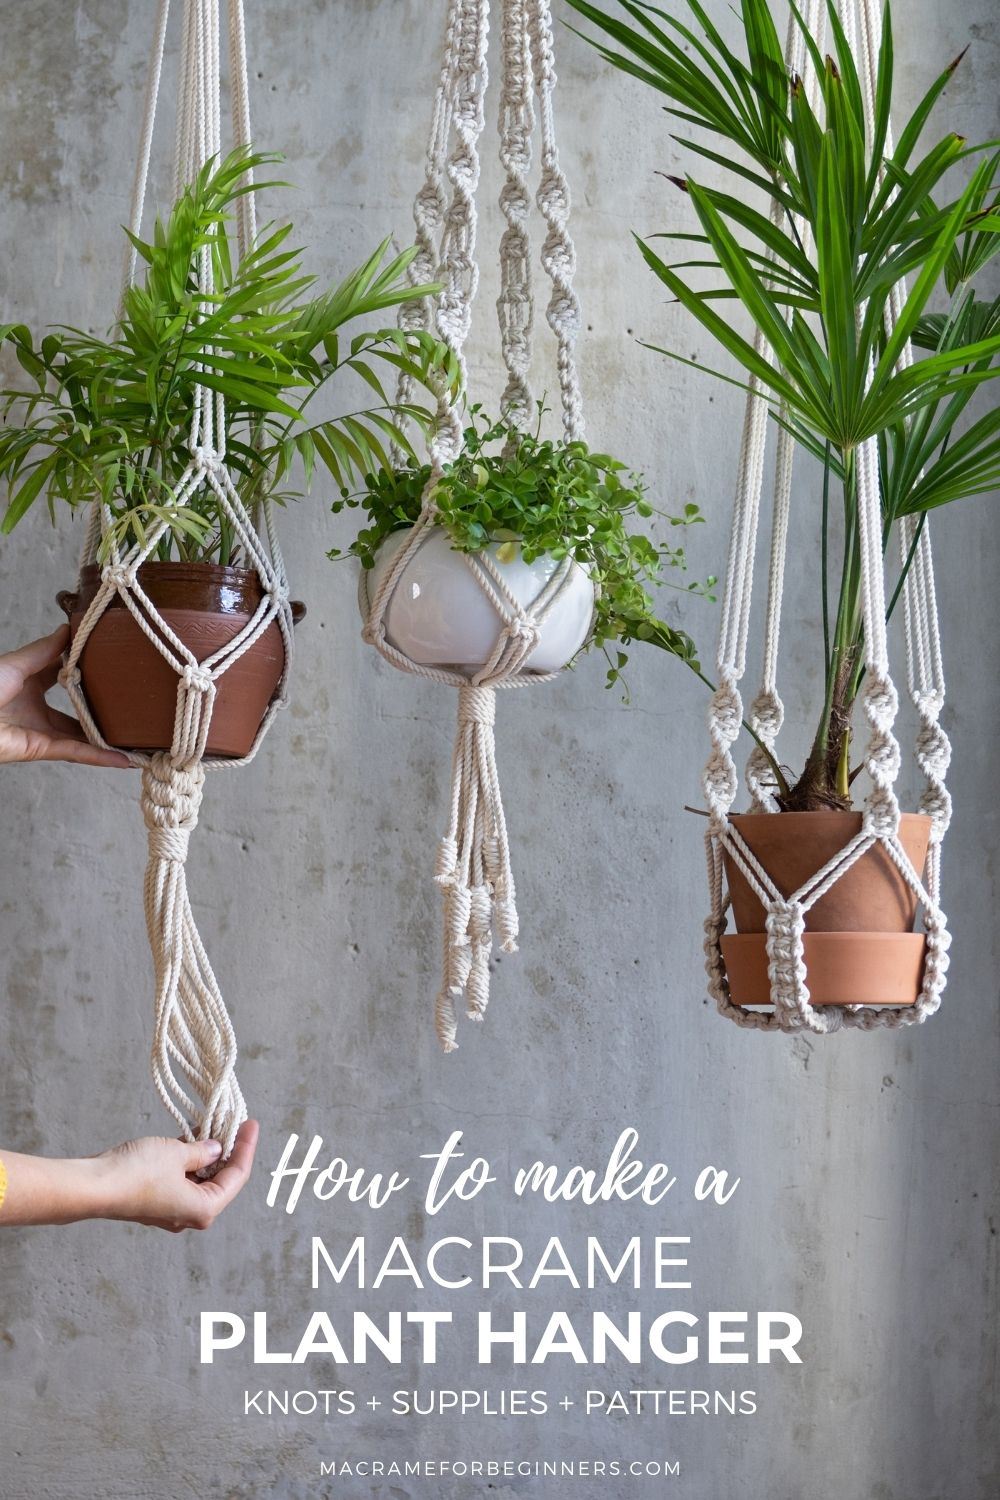 How to Make a Macrame Plant Hanger – Knots + Supplies + Patterns - Best Tips for Beginners